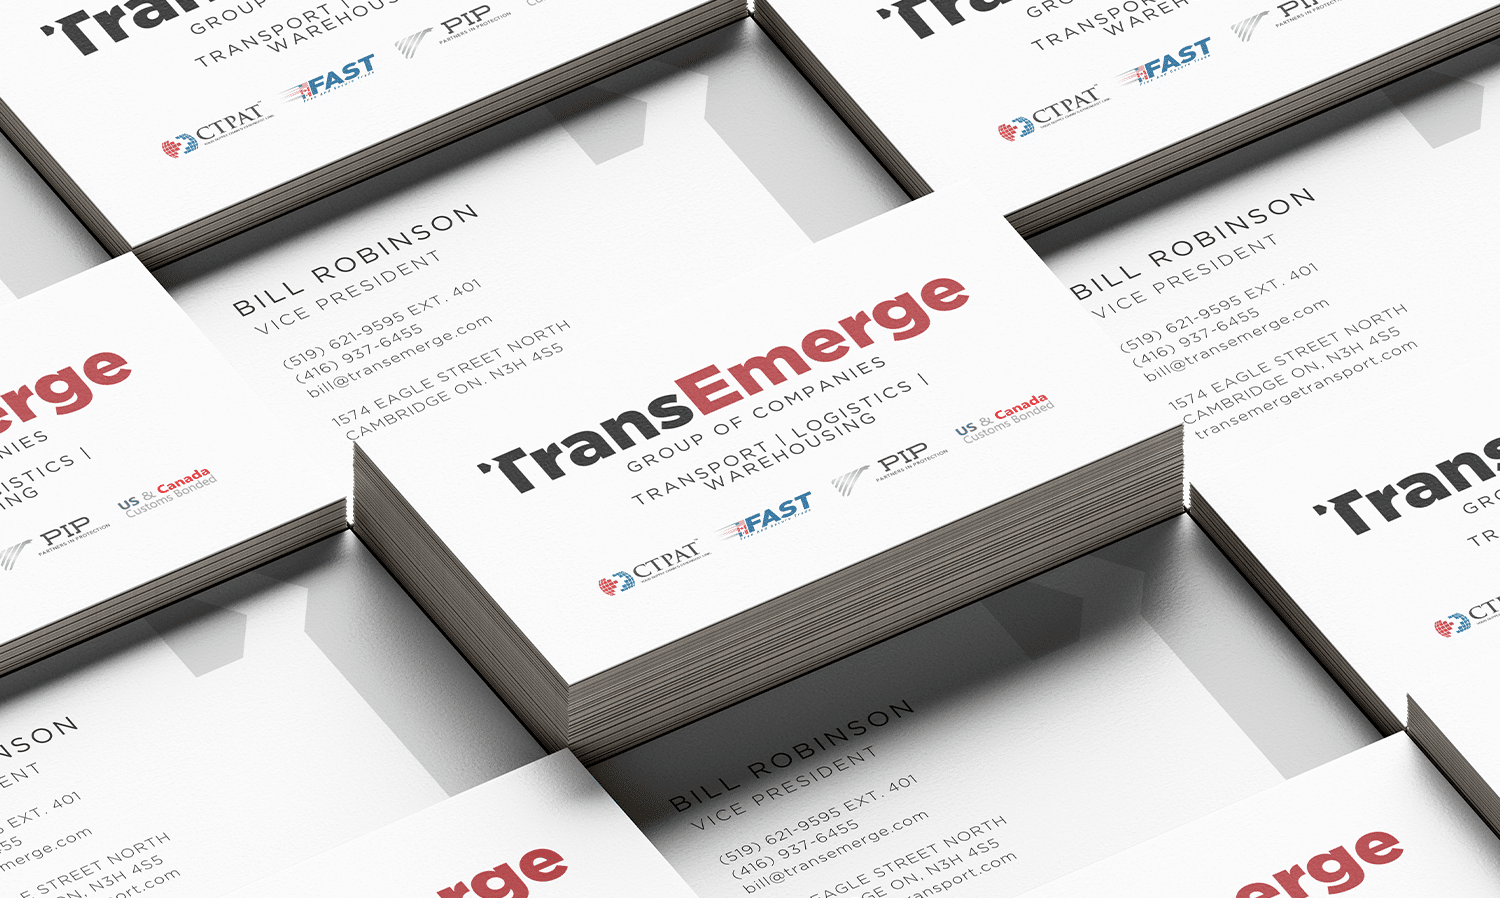 Trans Emerge Business Card Design